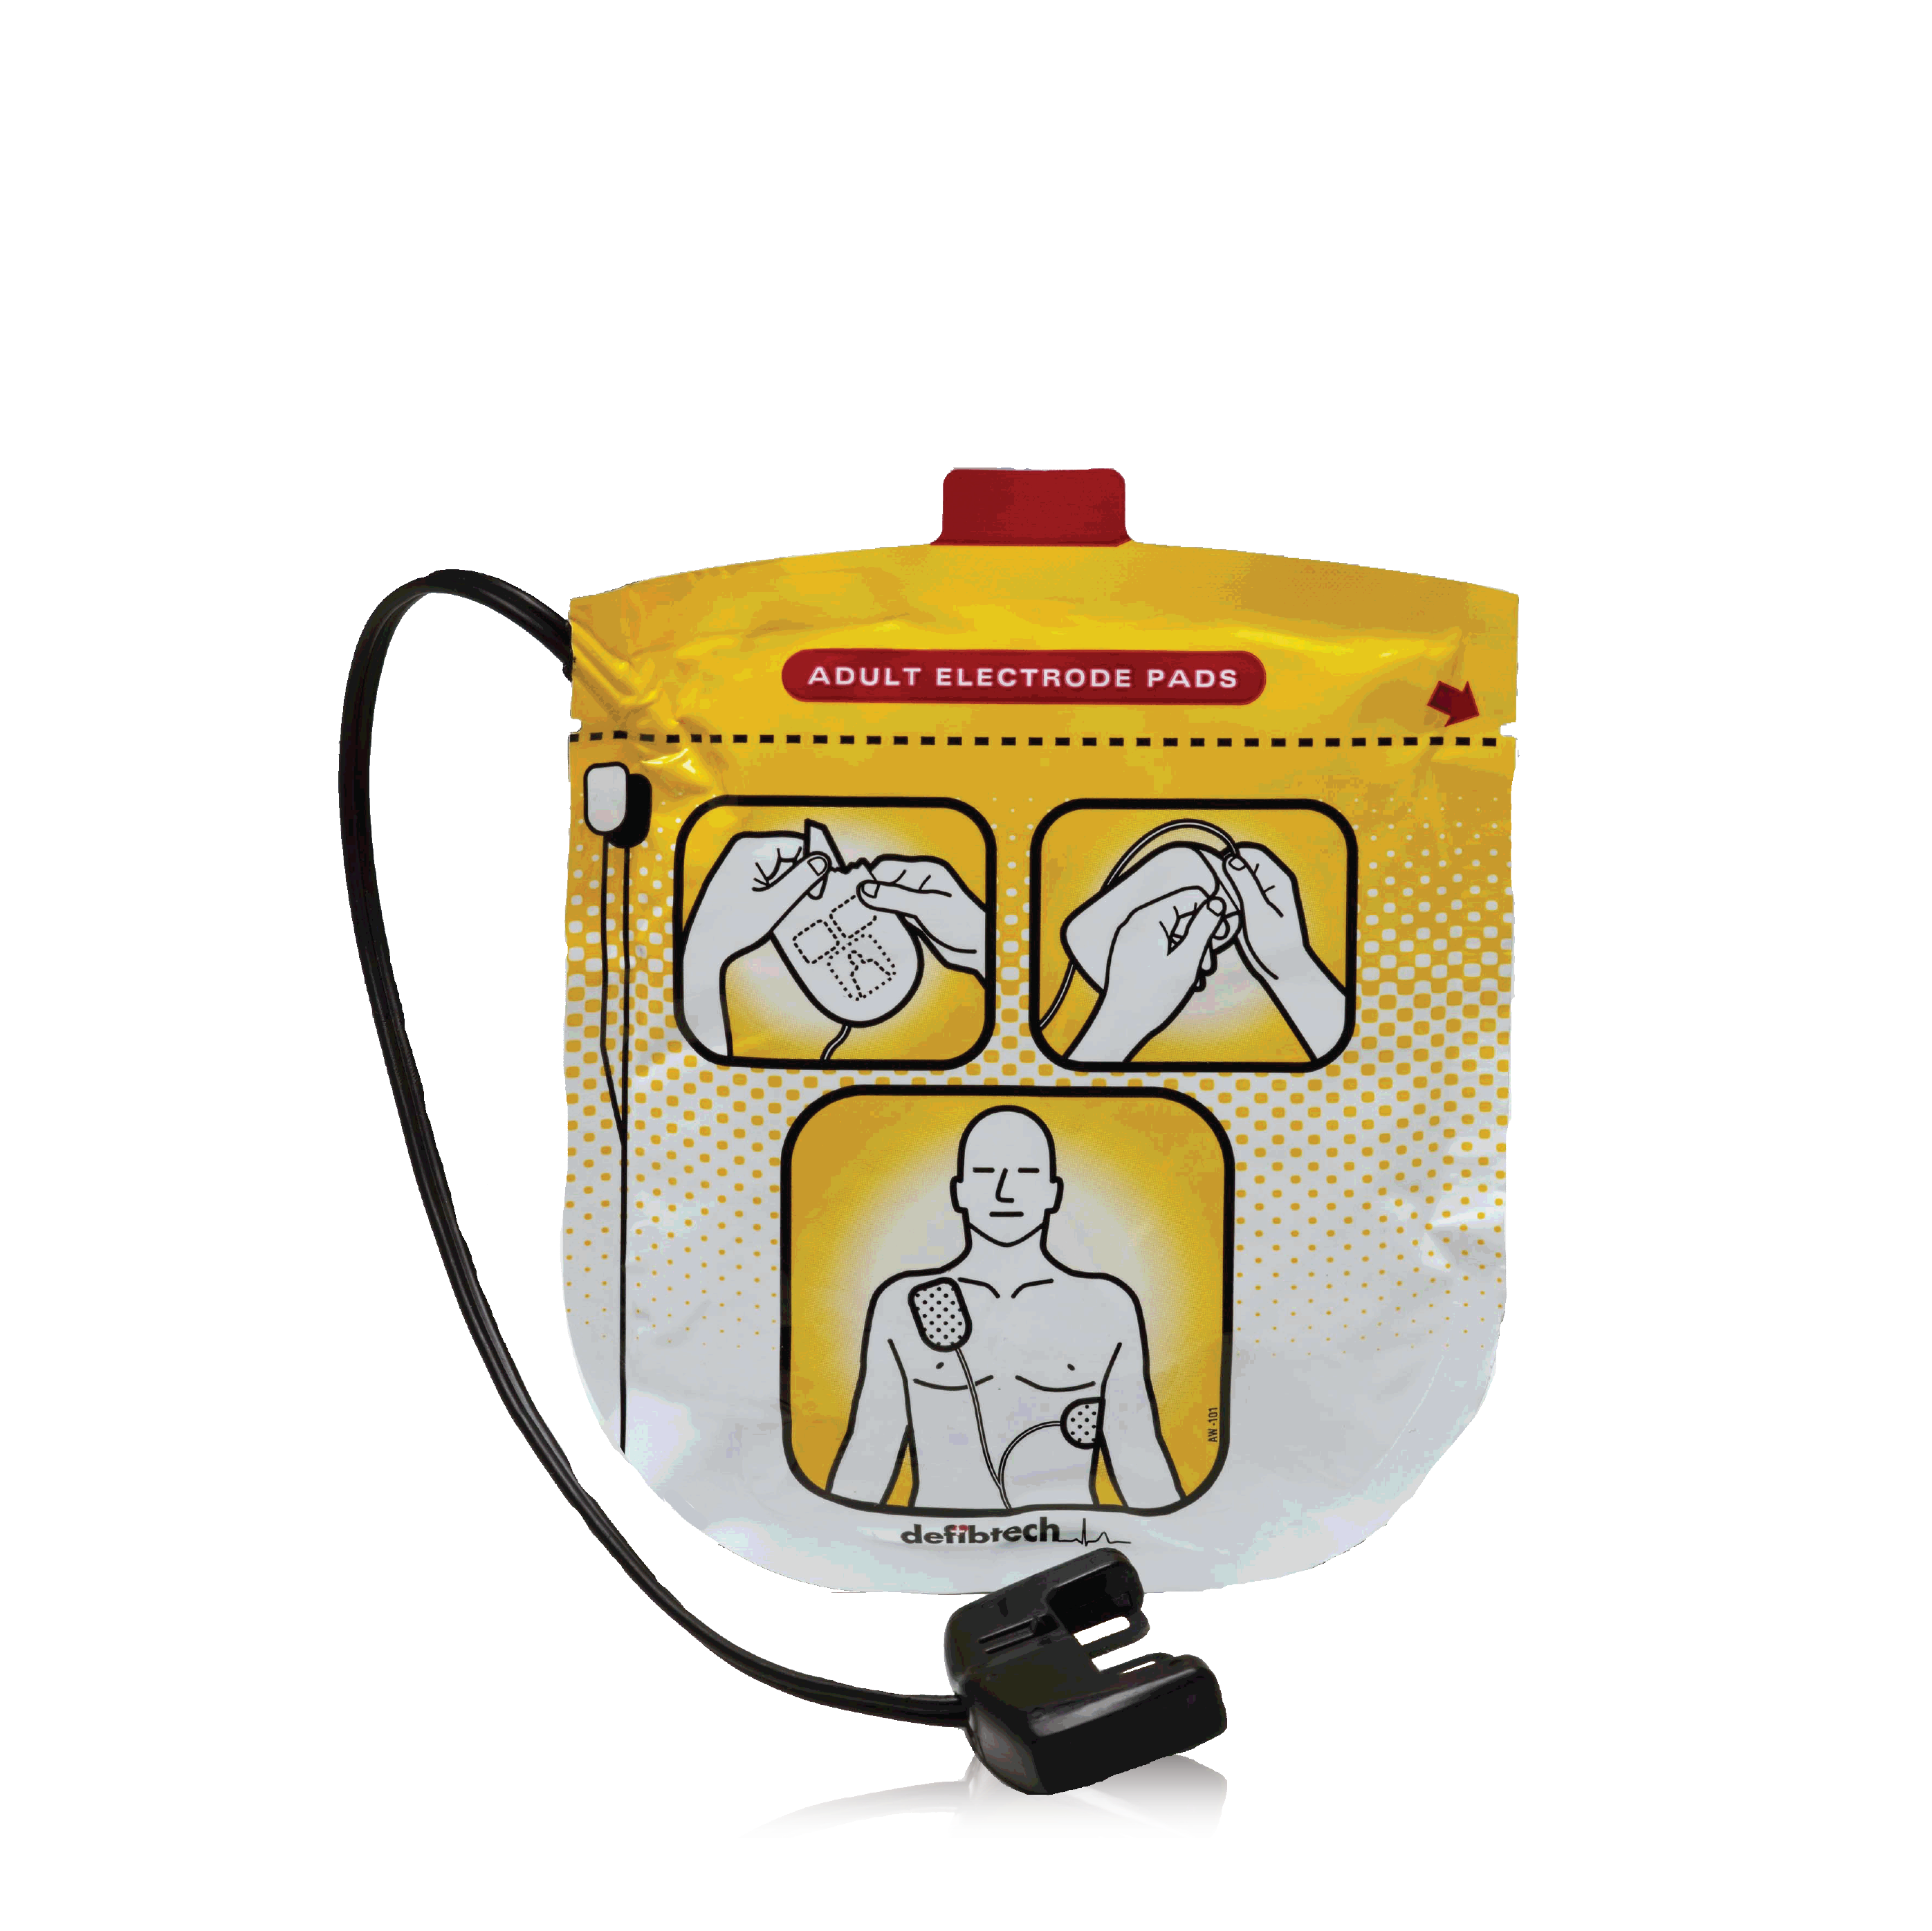 Adult Defibrillation Pads (VIEW)